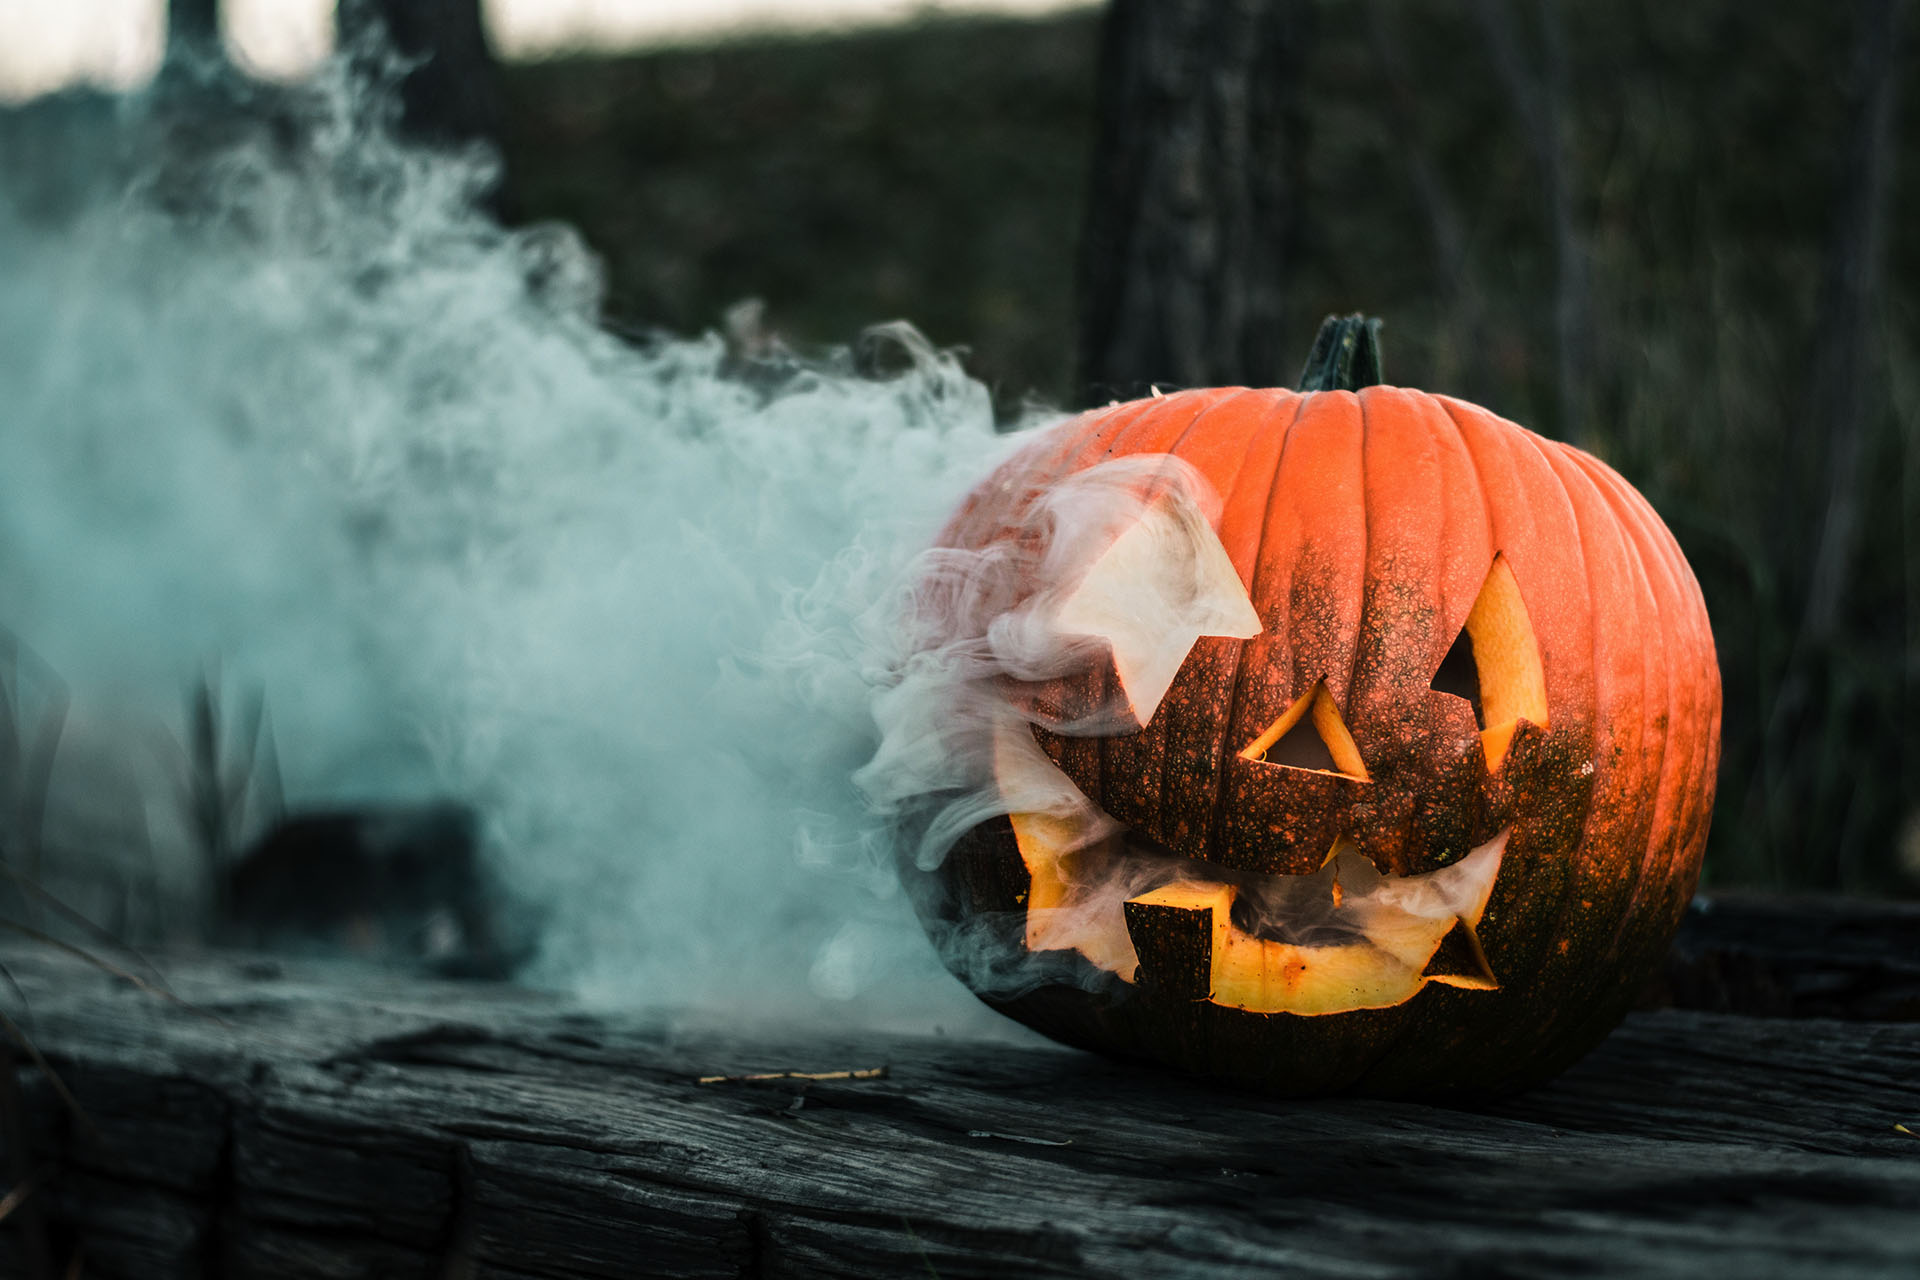 Smokey Pumpkin